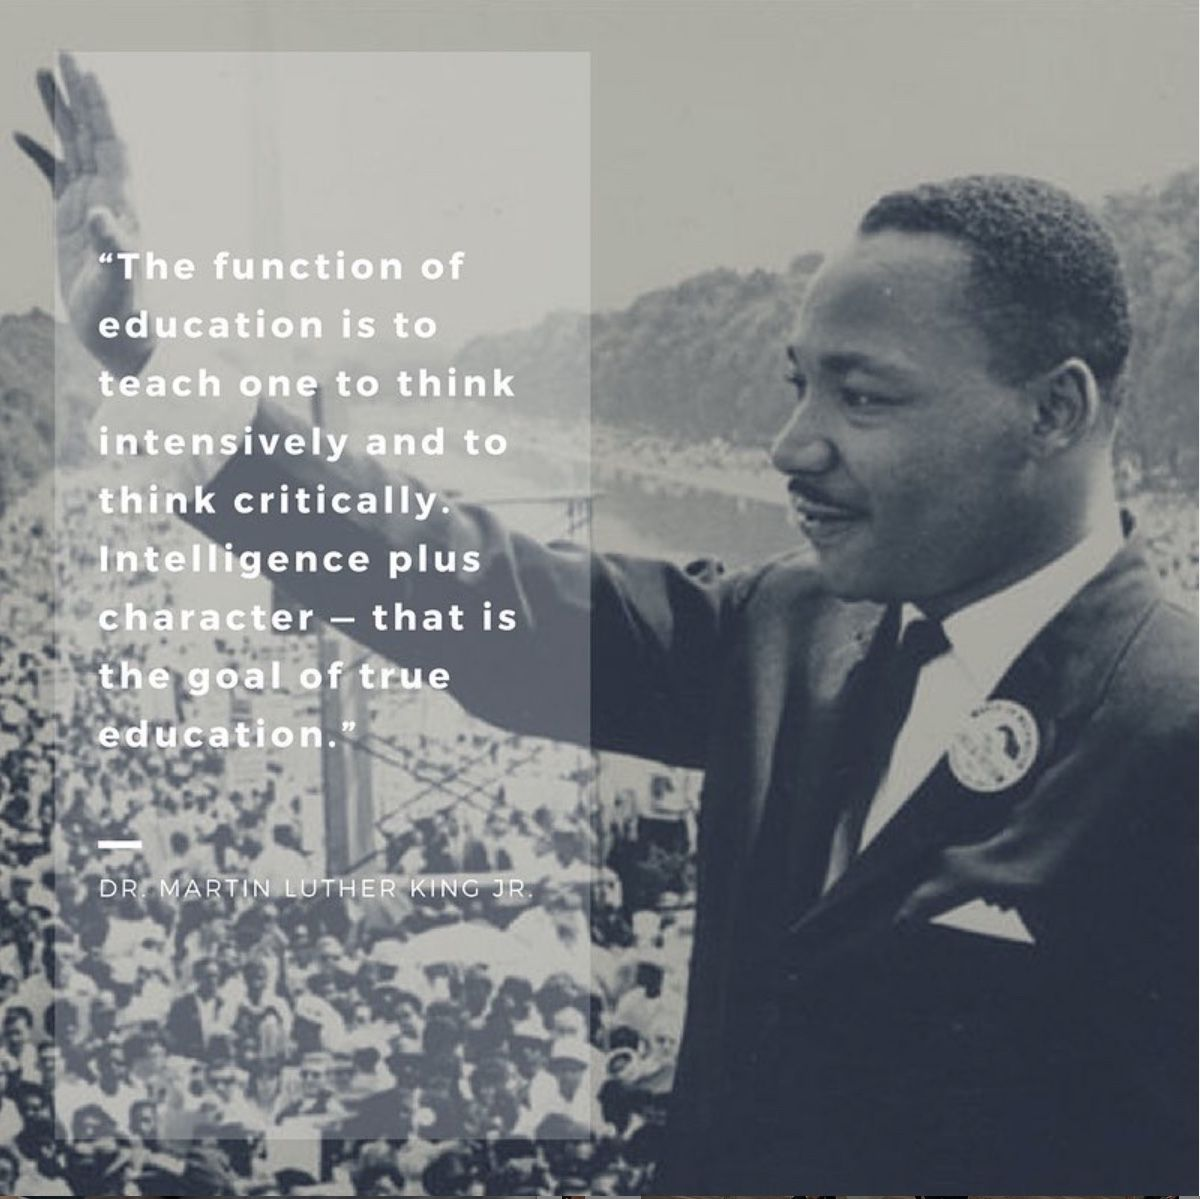 When you stand on the right side of history, your words are truly timeless. Dr. Martin Luther King, Jr. spoke these words in 1947, and even as education has evolved, they still ring true. #MLKday #martinlutherking #education